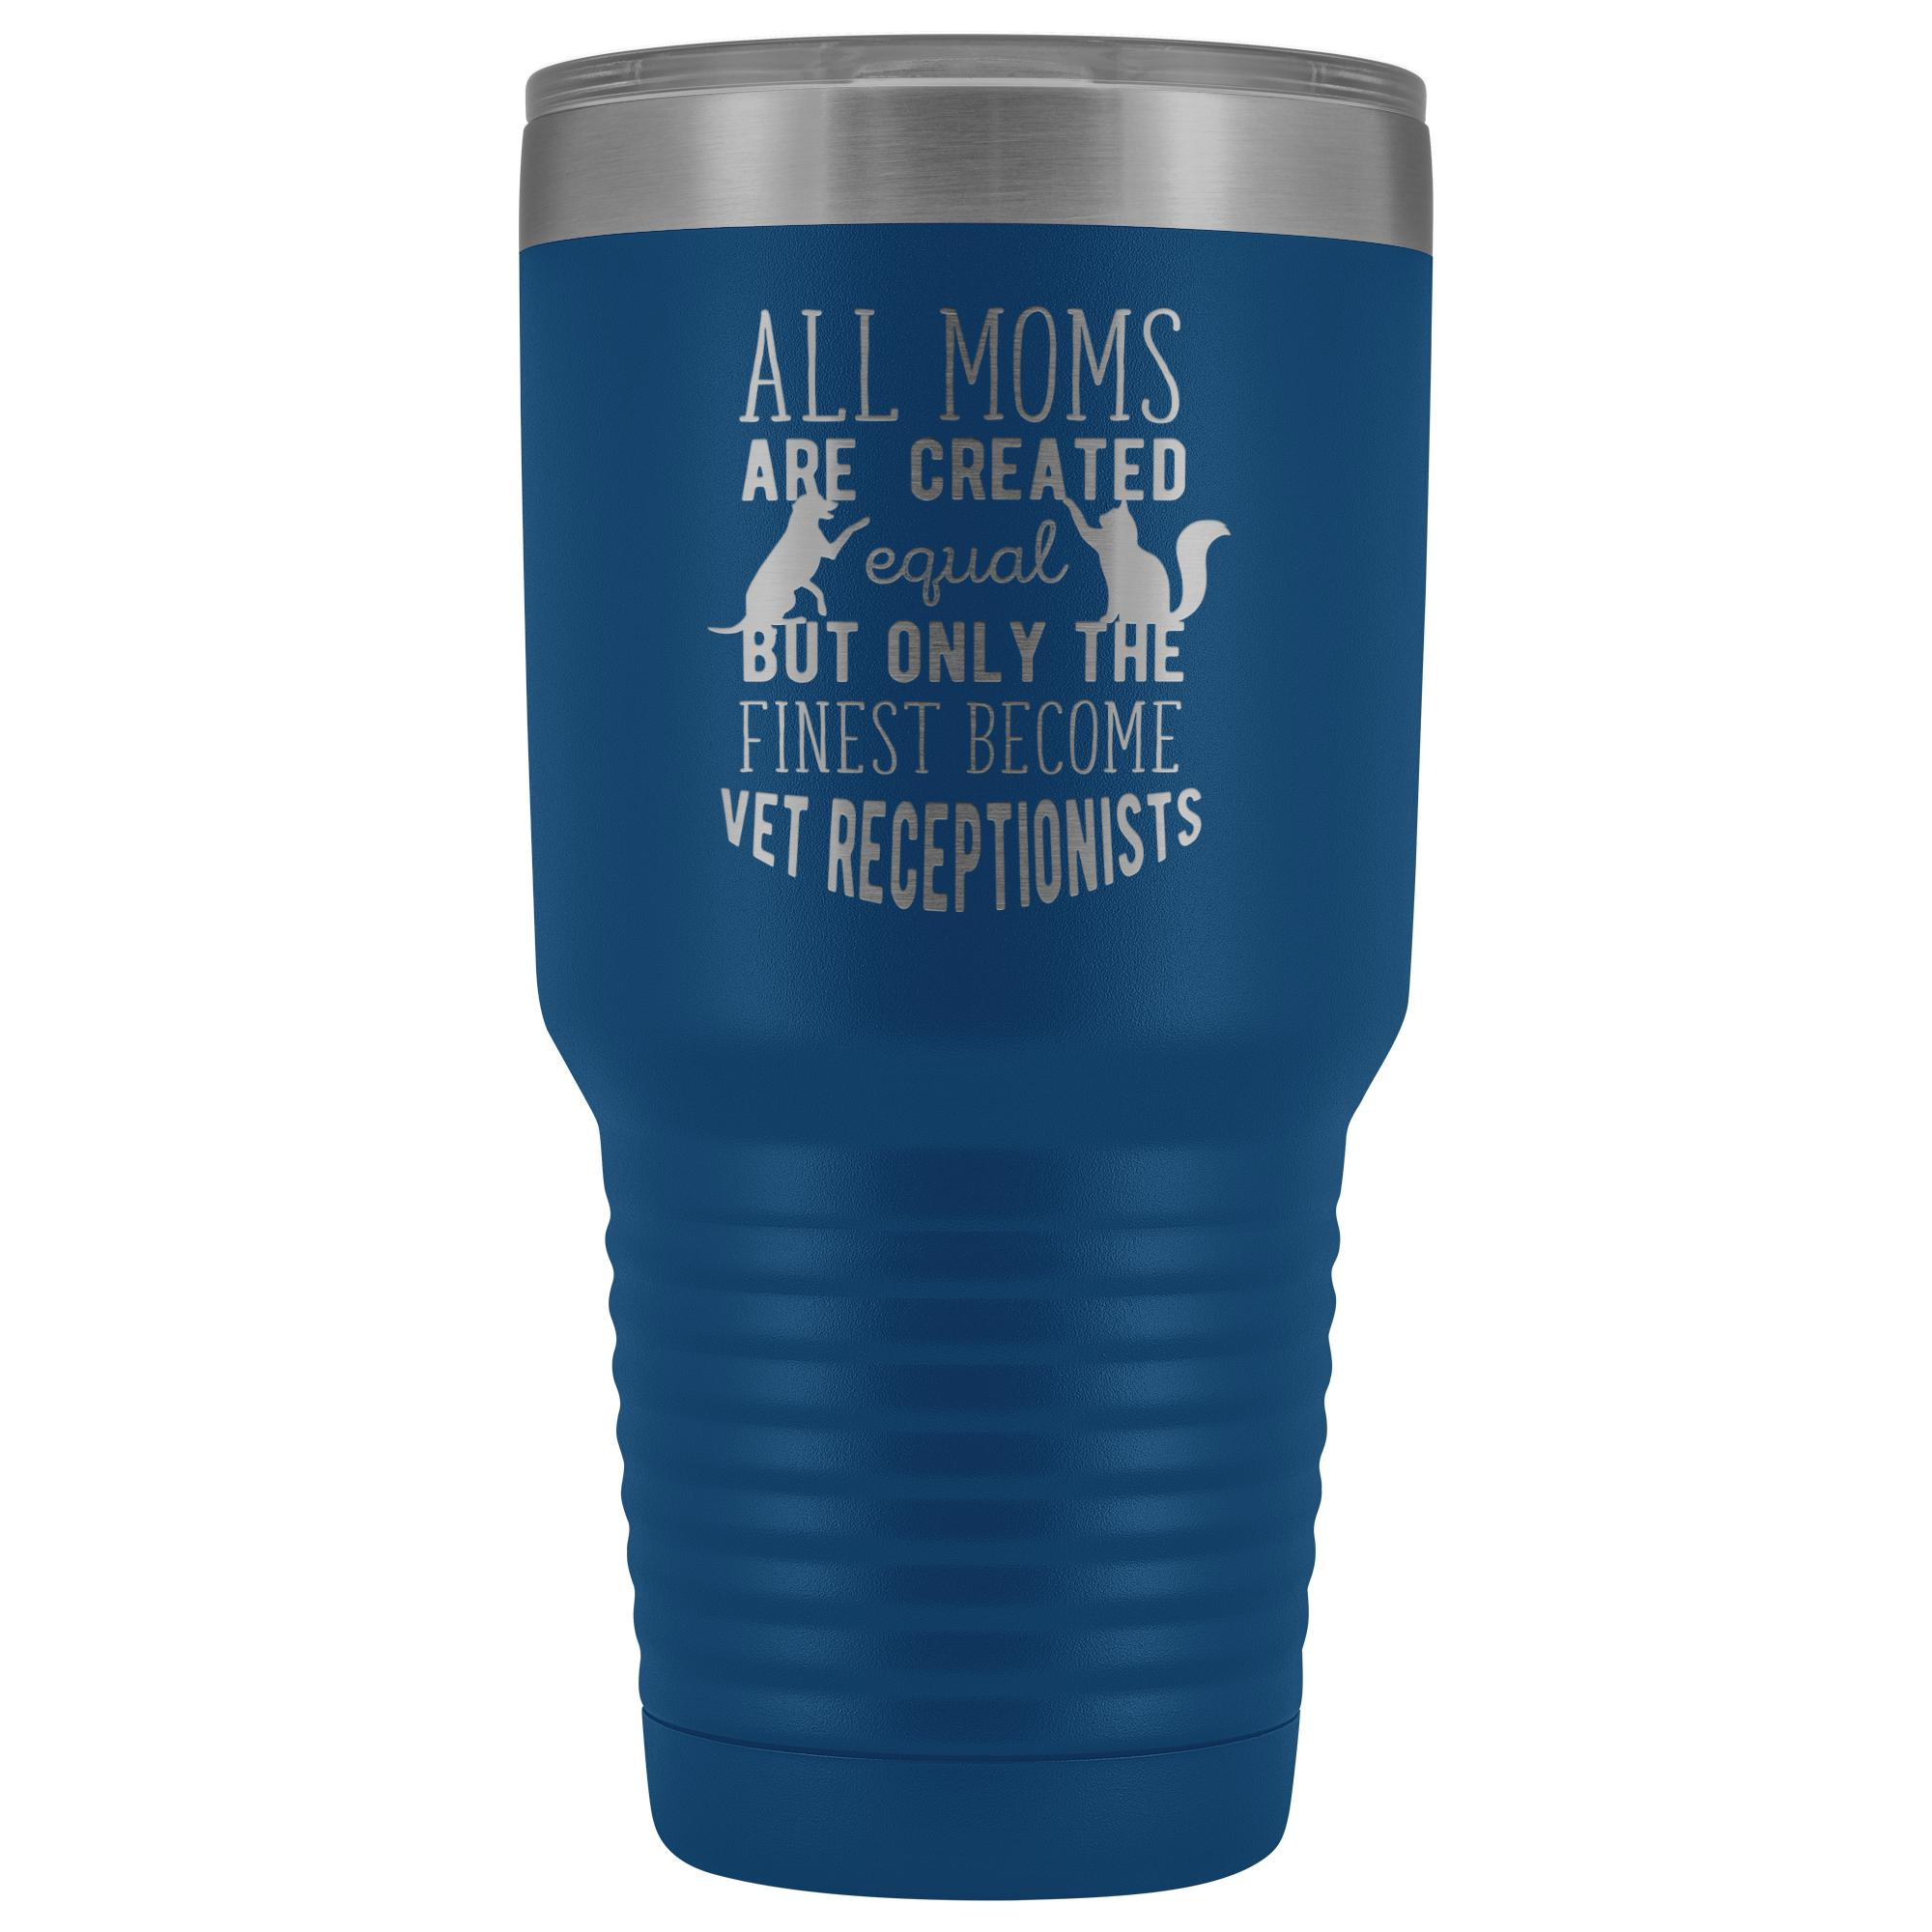 All moms were created equal, but only the finest become vet receptionists 30oz Vacuum Tumbler-Tumblers-I love Veterinary